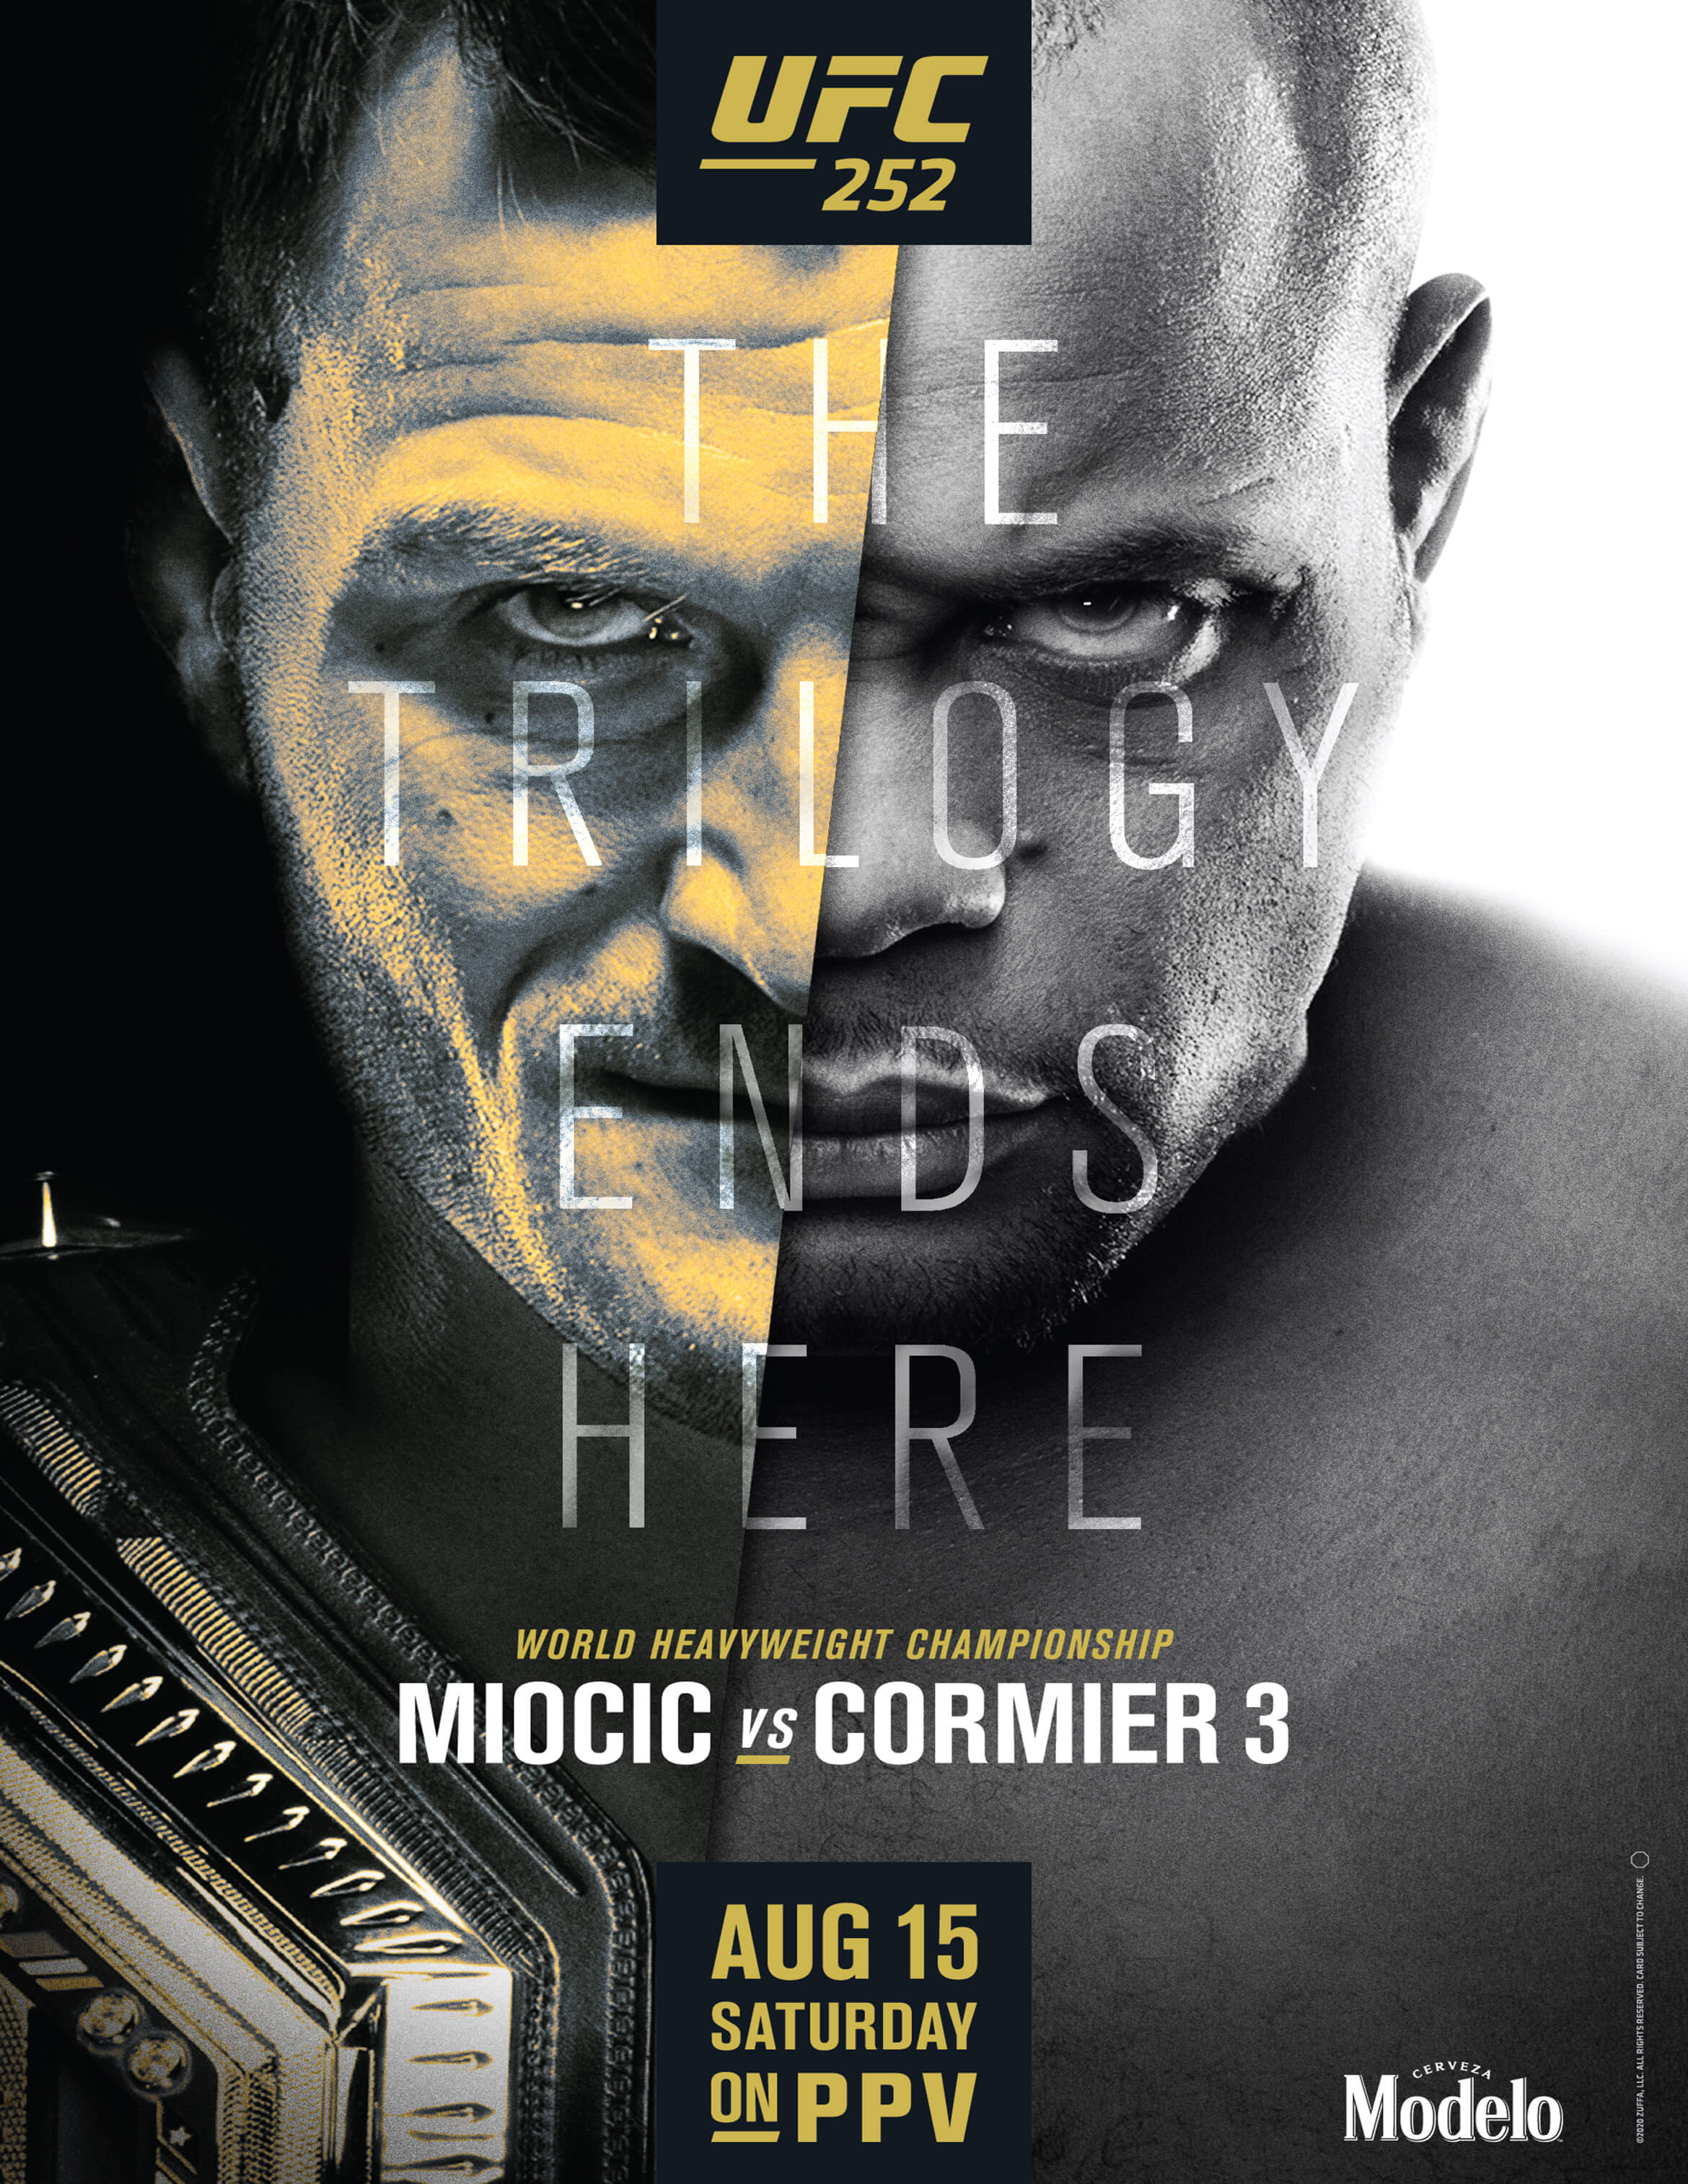 UFC 252 at Ferg's Sports Bar - Miocic vs. Cormier 3